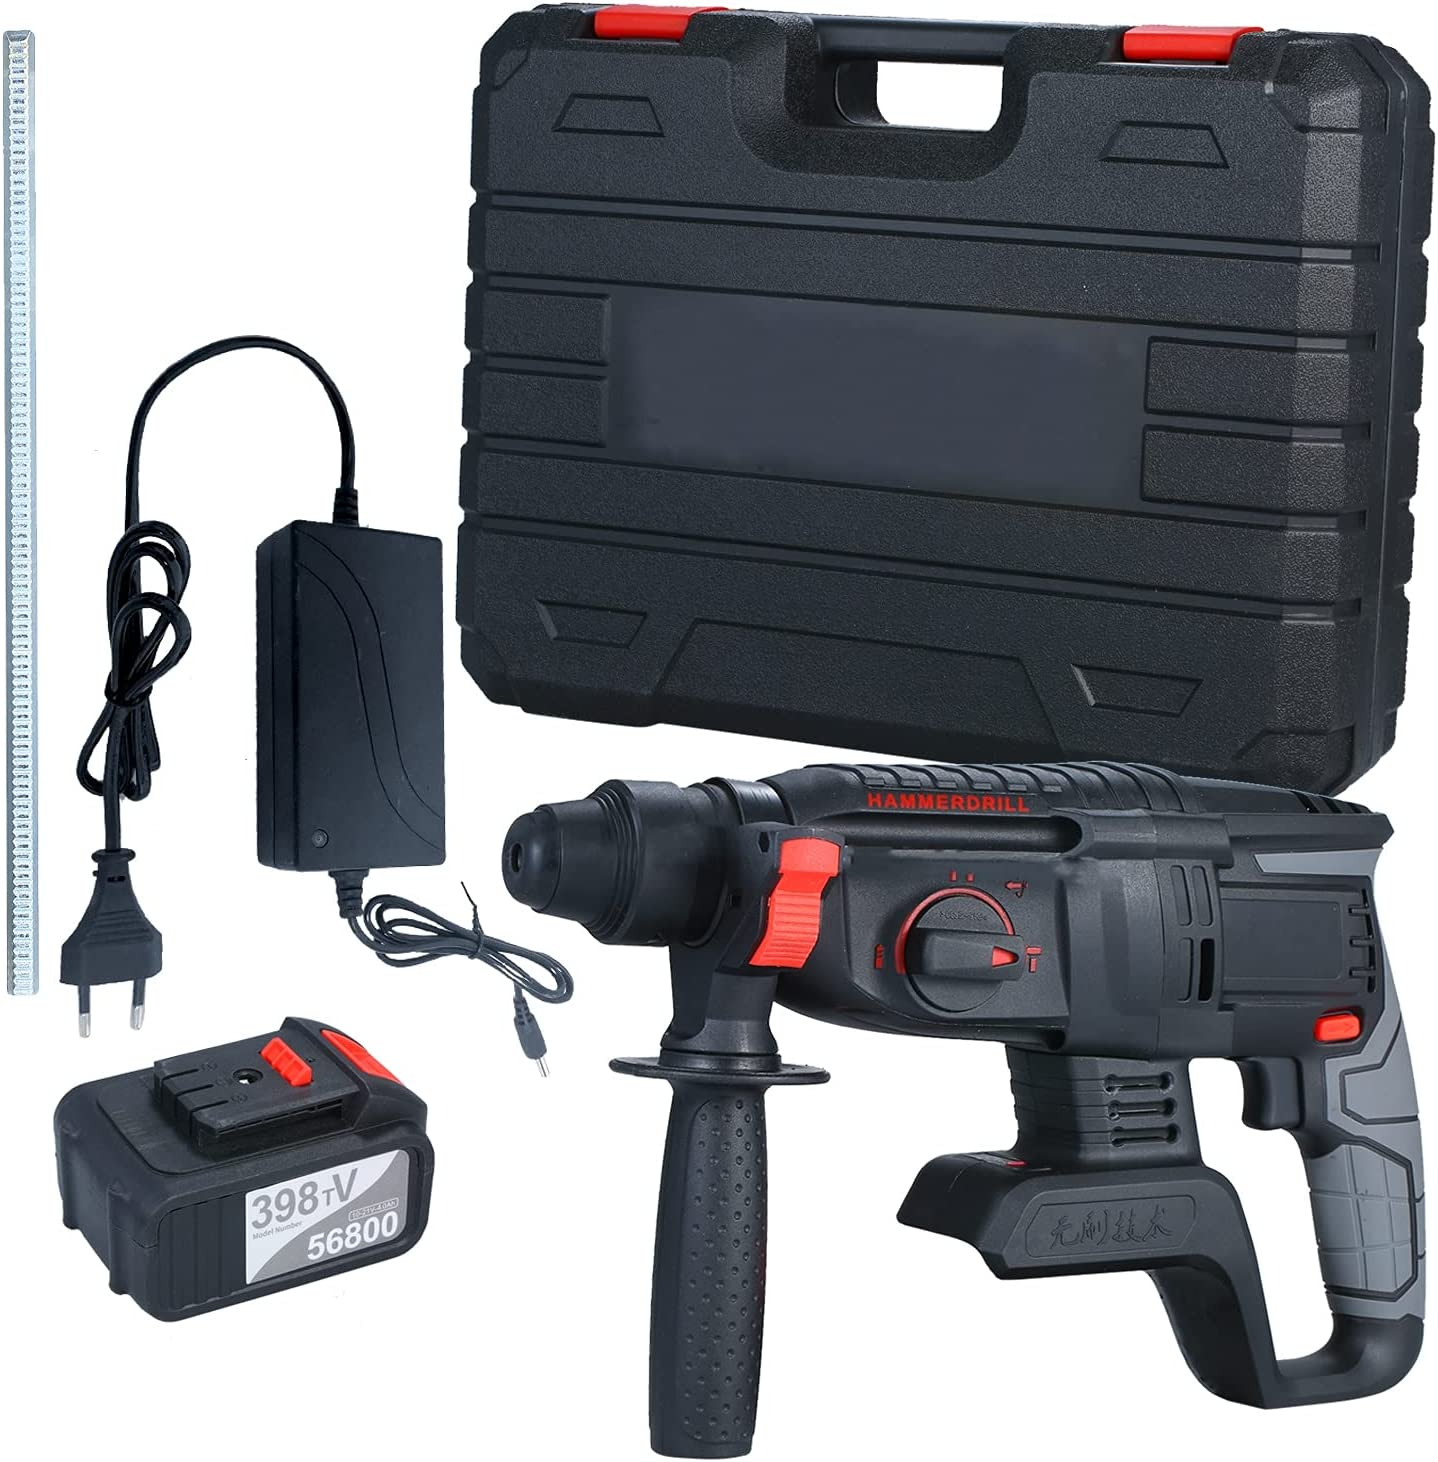 DACHENZI Electric NEW before selling quality assurance ☆ Impact Drill Brushless He Screwdriver